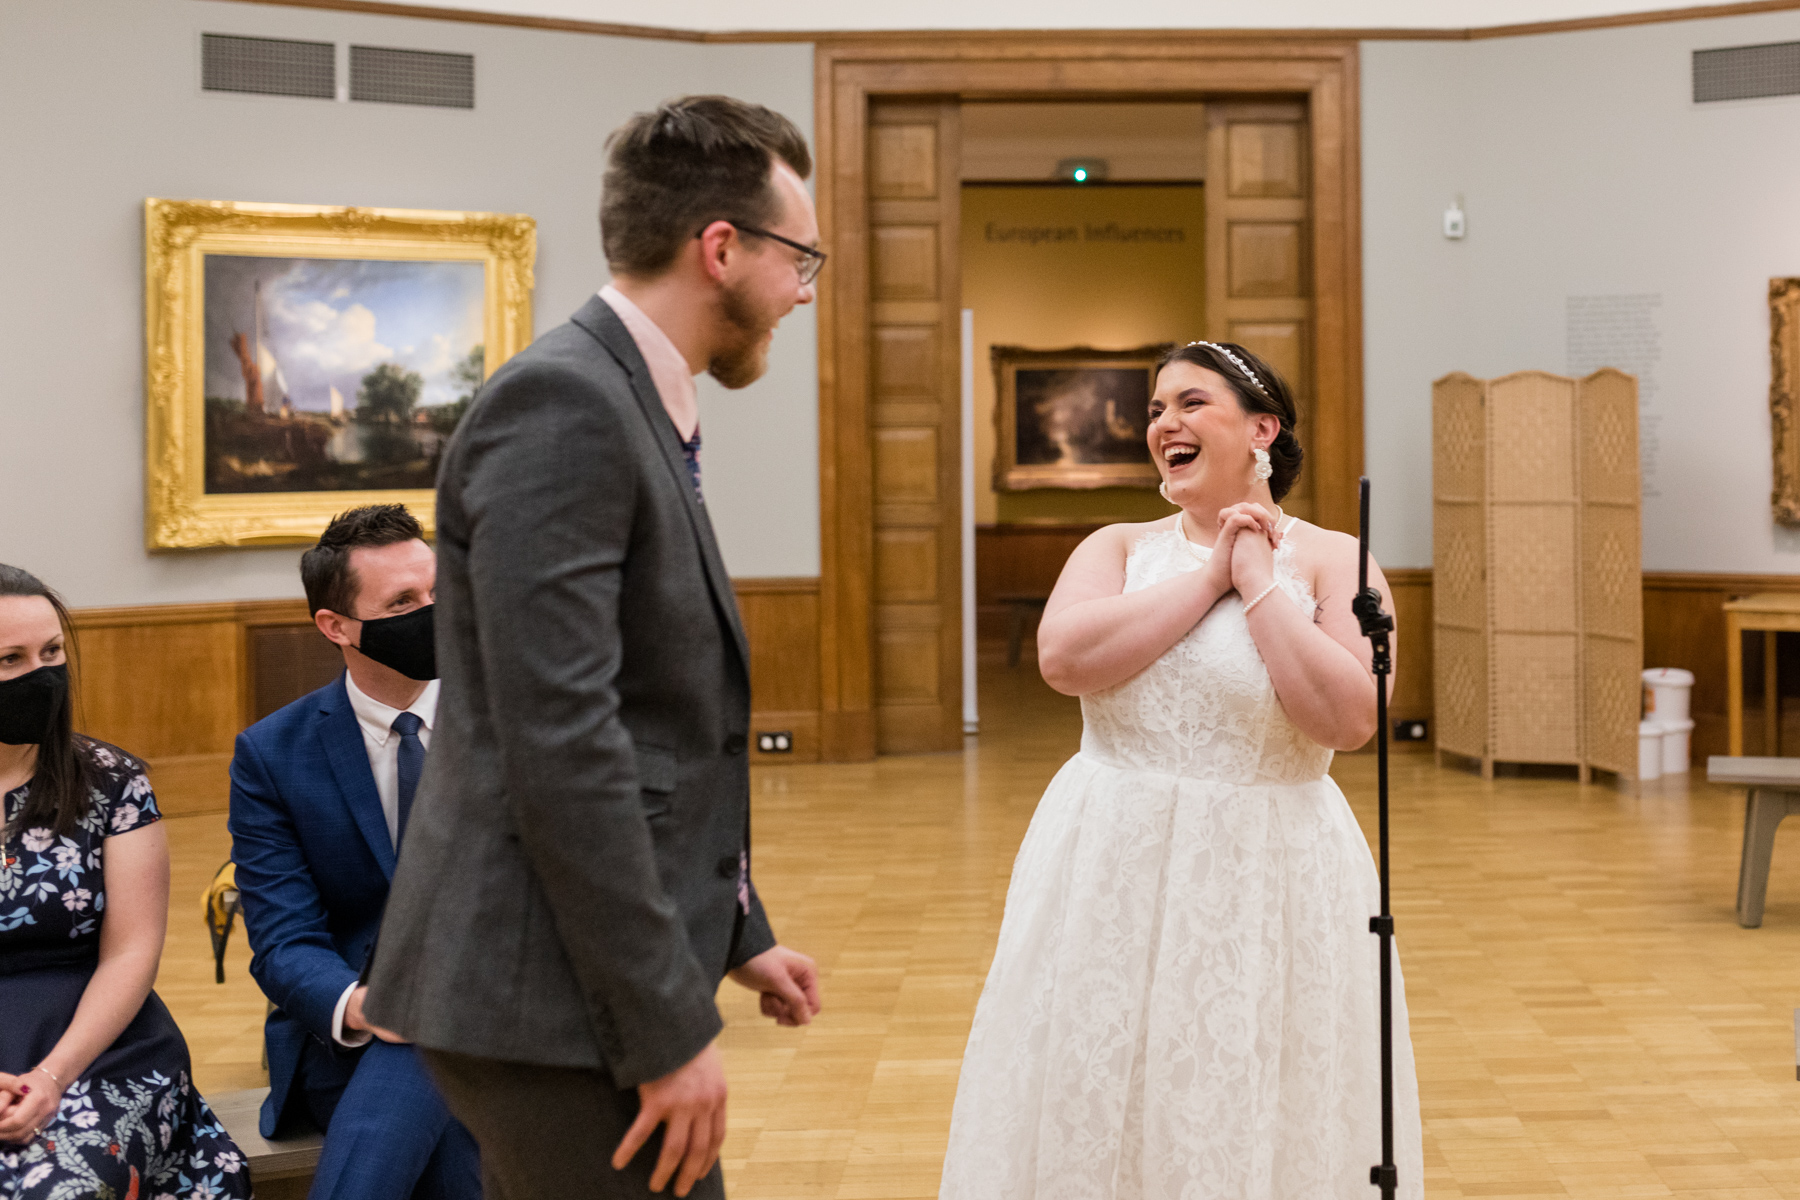 Bride and groom laughing with guests via video link